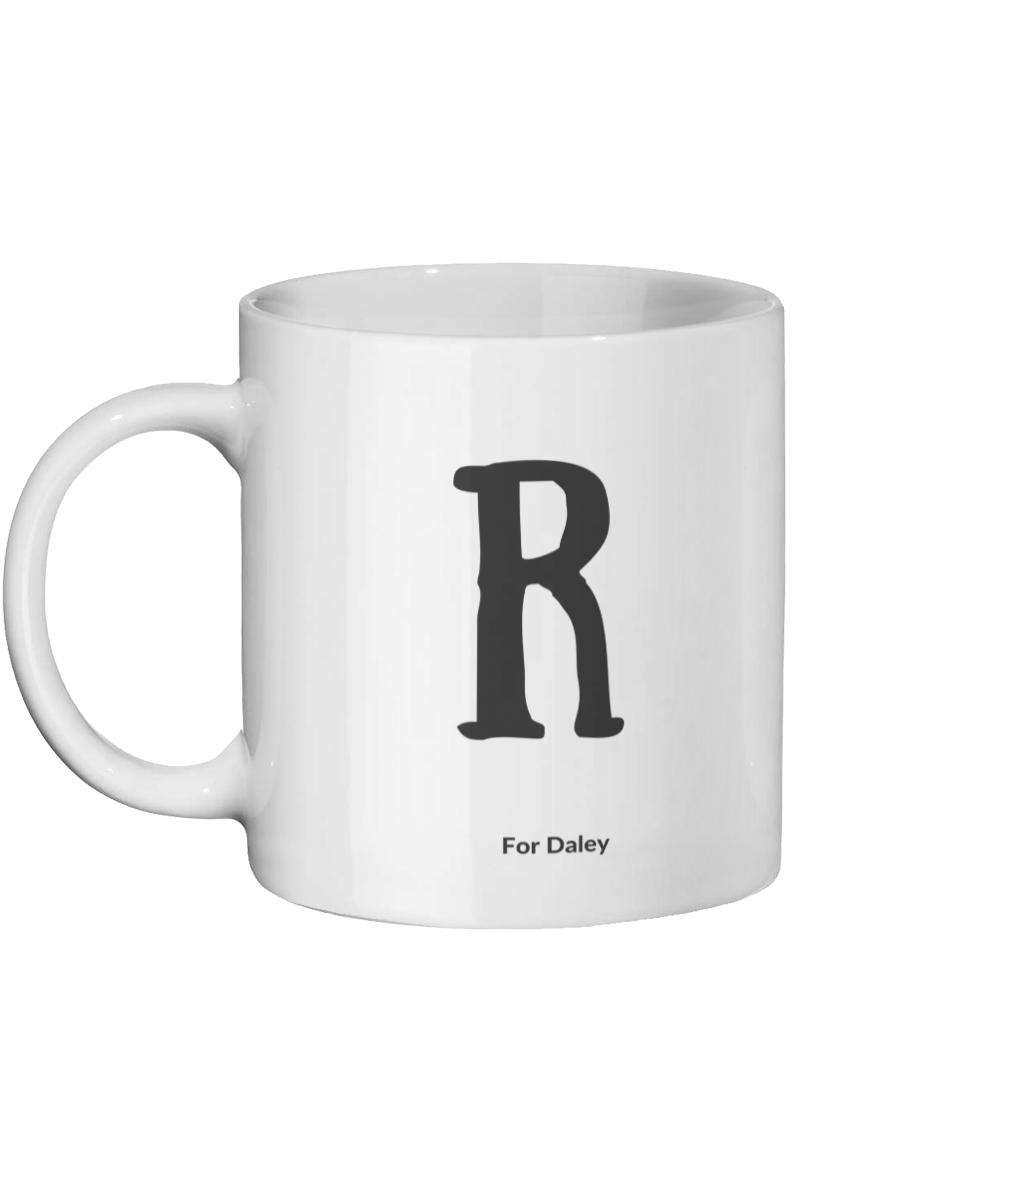 R For Daley Mug